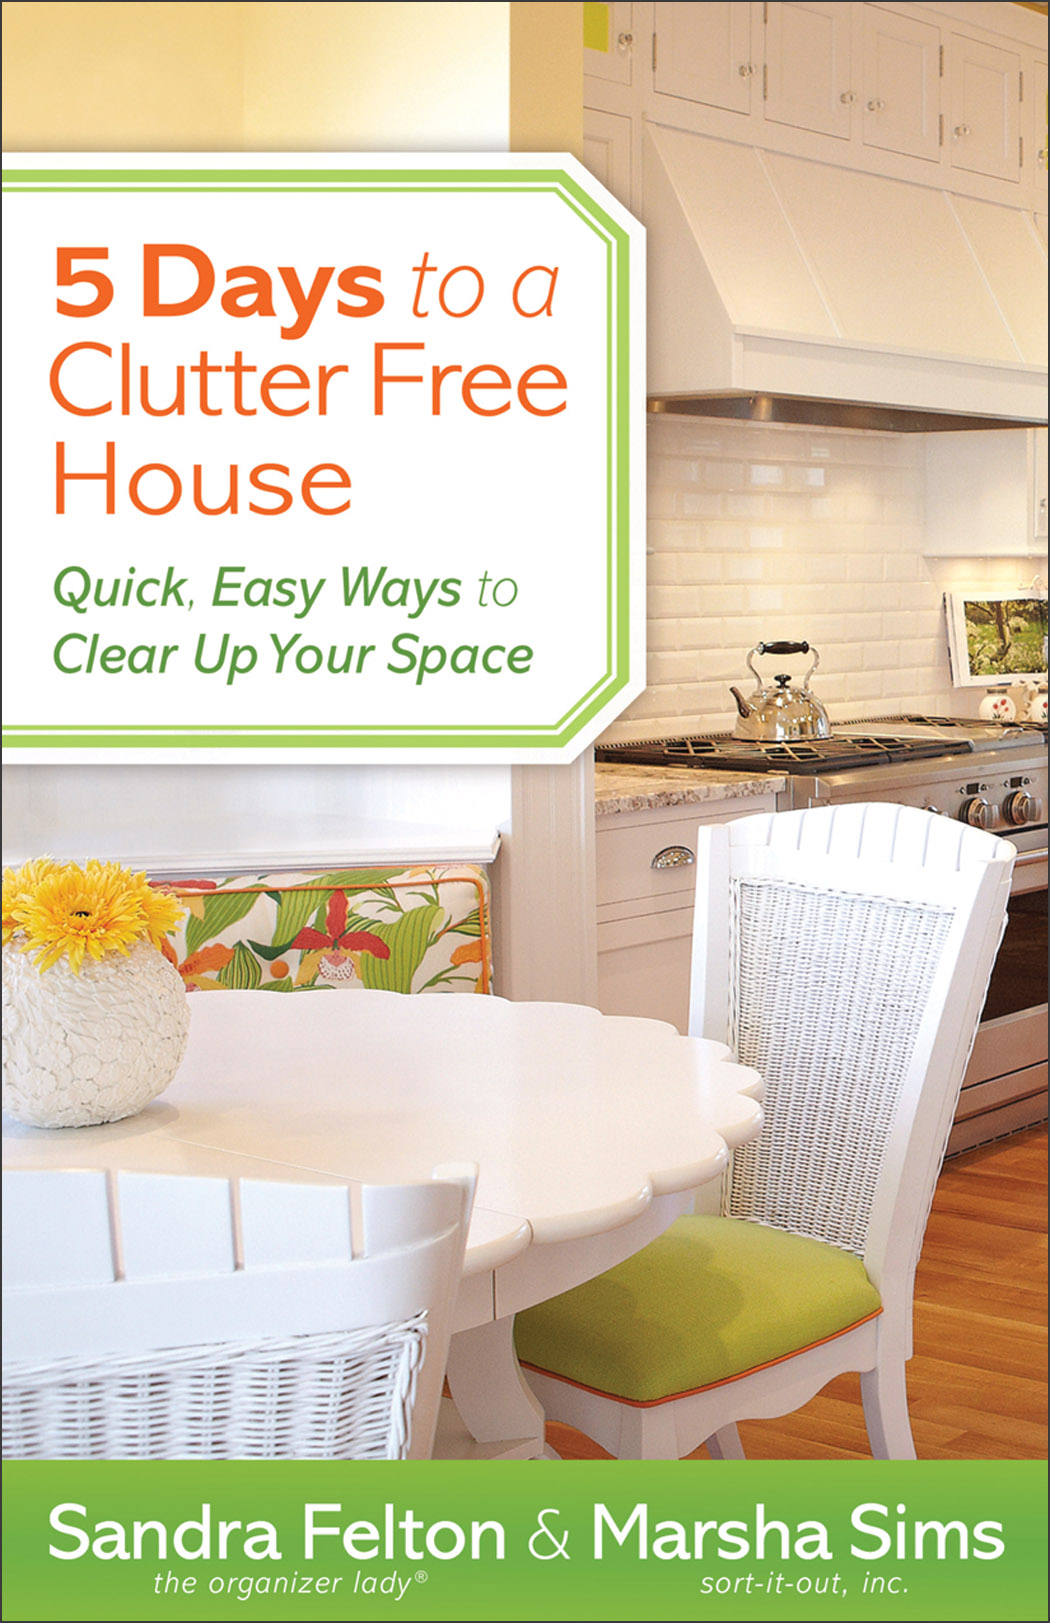 5 Days to a Clutter-Free House Quick, Easy Ways to Clear Up Your Space